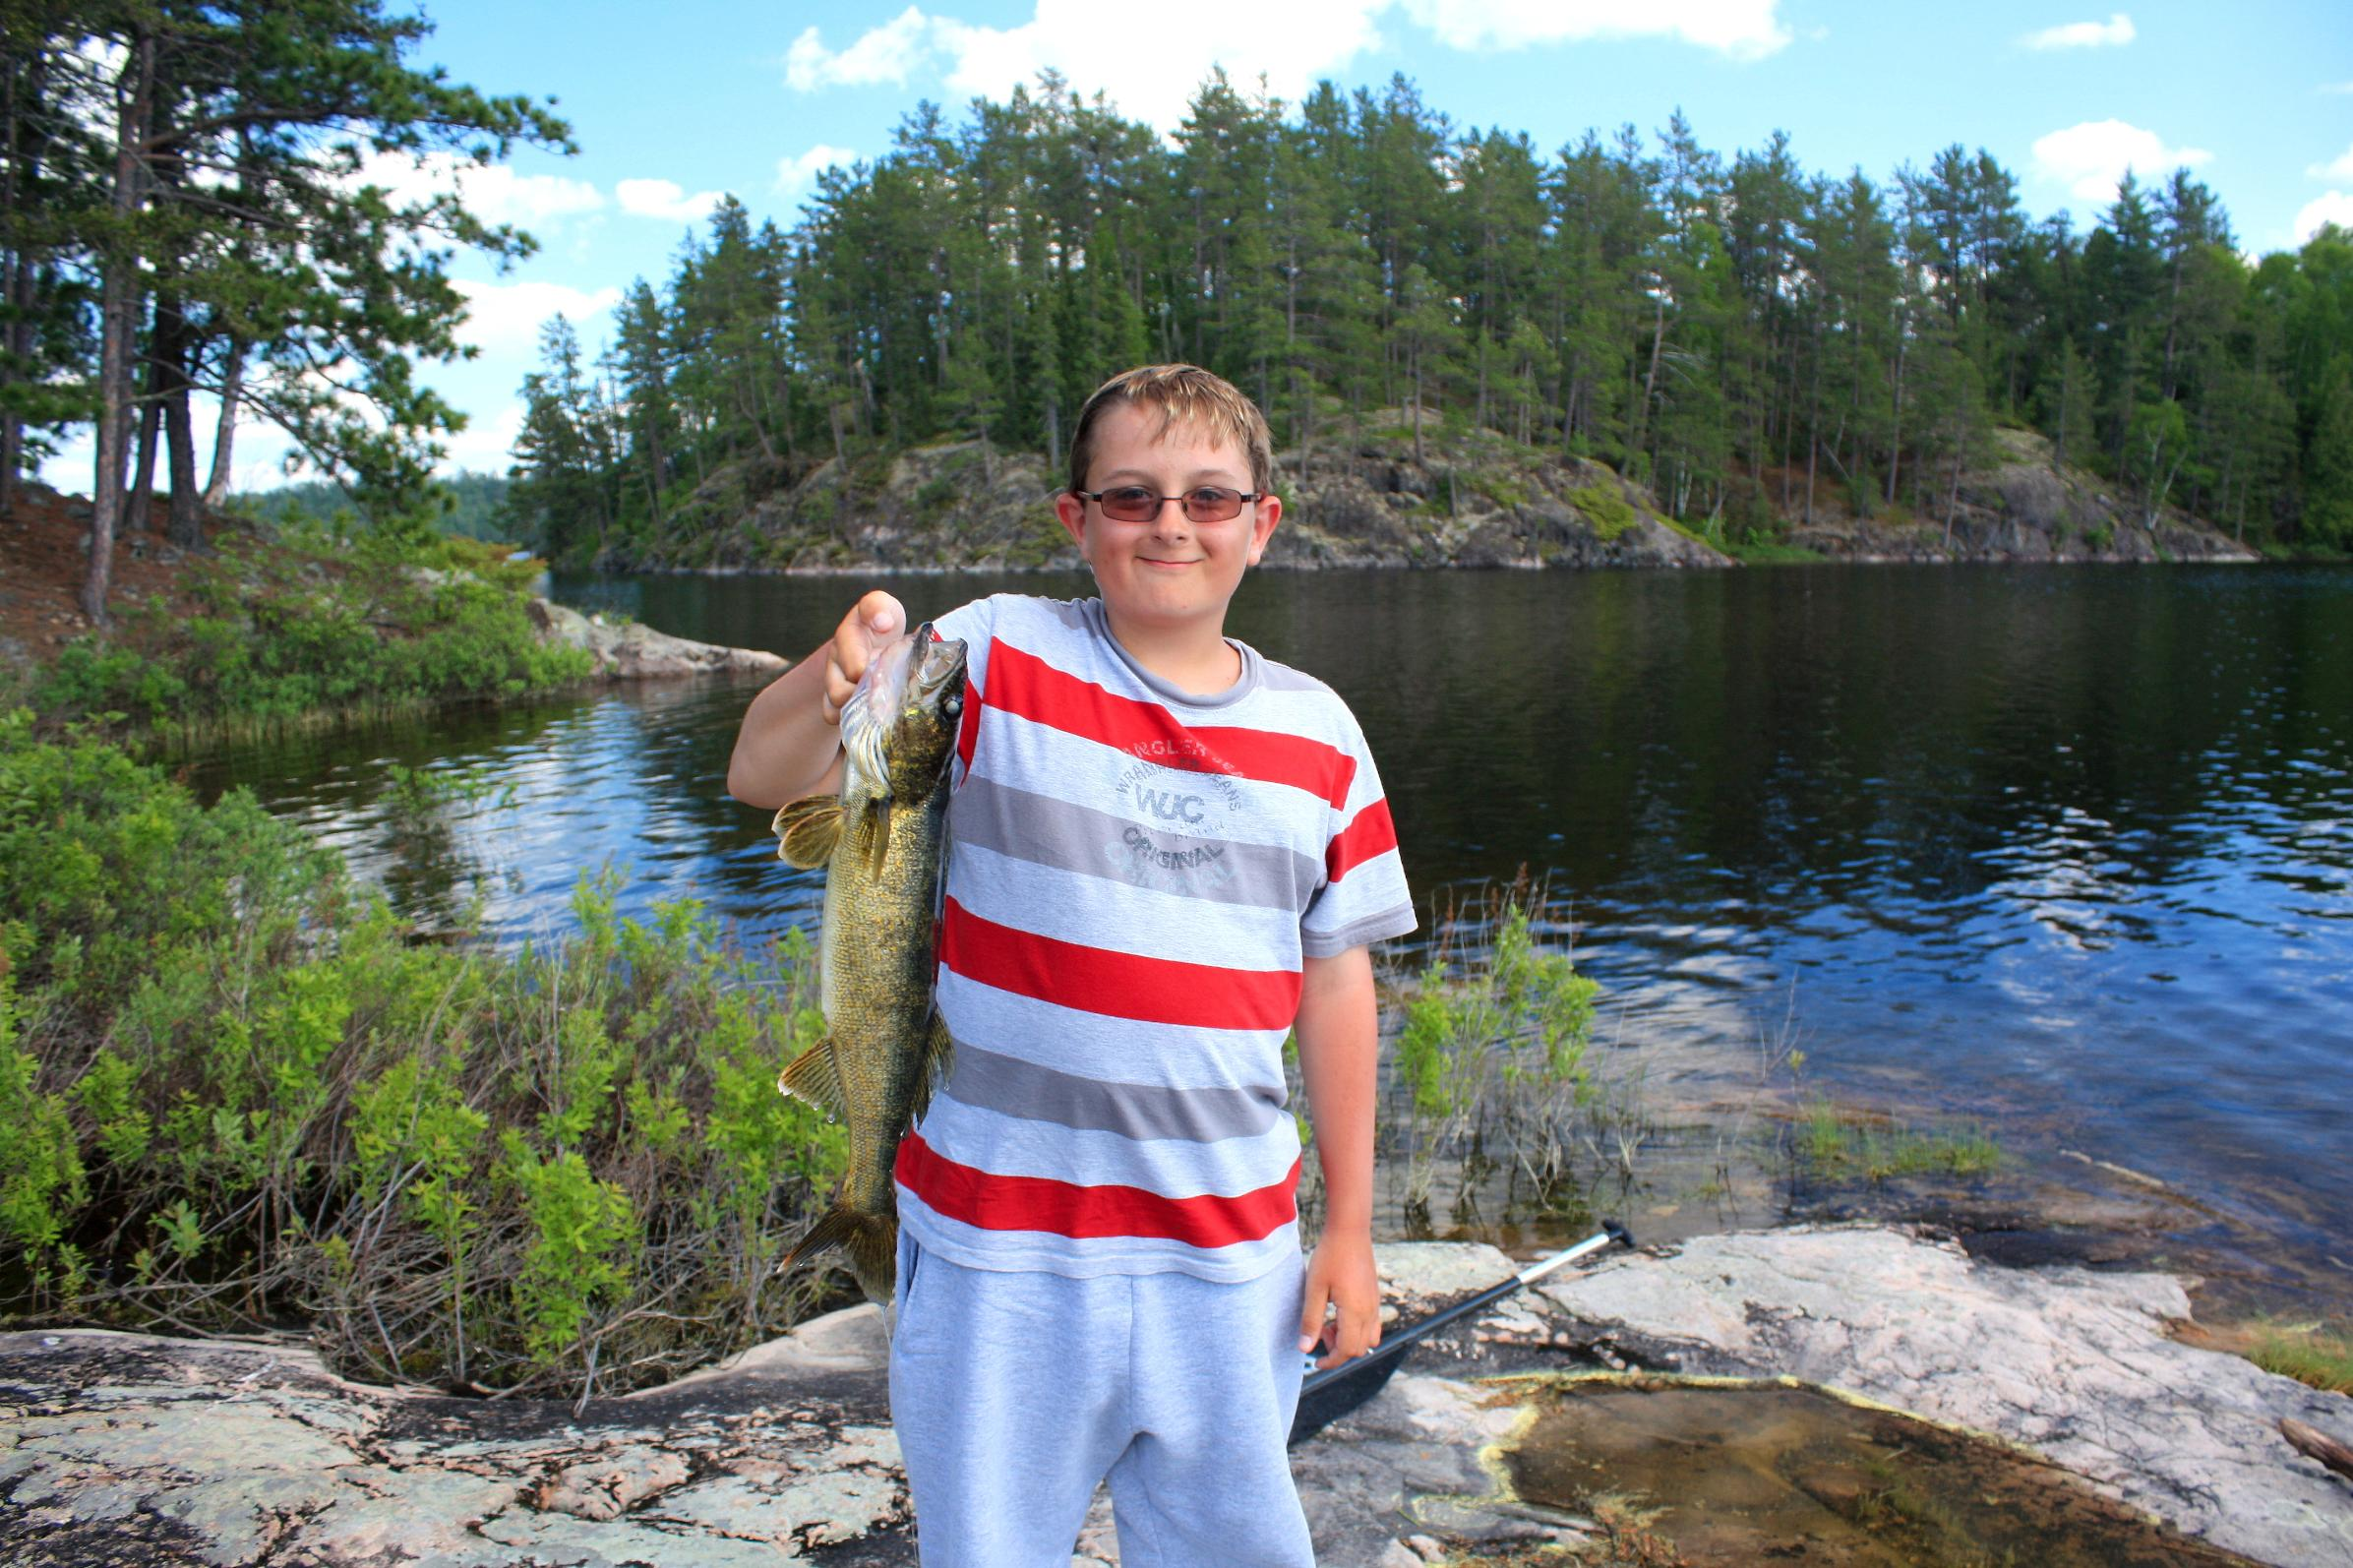 Hamer nature photos 187 boundary waters - In 2009 It Would Be My Son Catching His First Walleye And Pike Of The Trip Within 45 Mins Of Each Other It Was One Of Those Moments Kids Talk About For